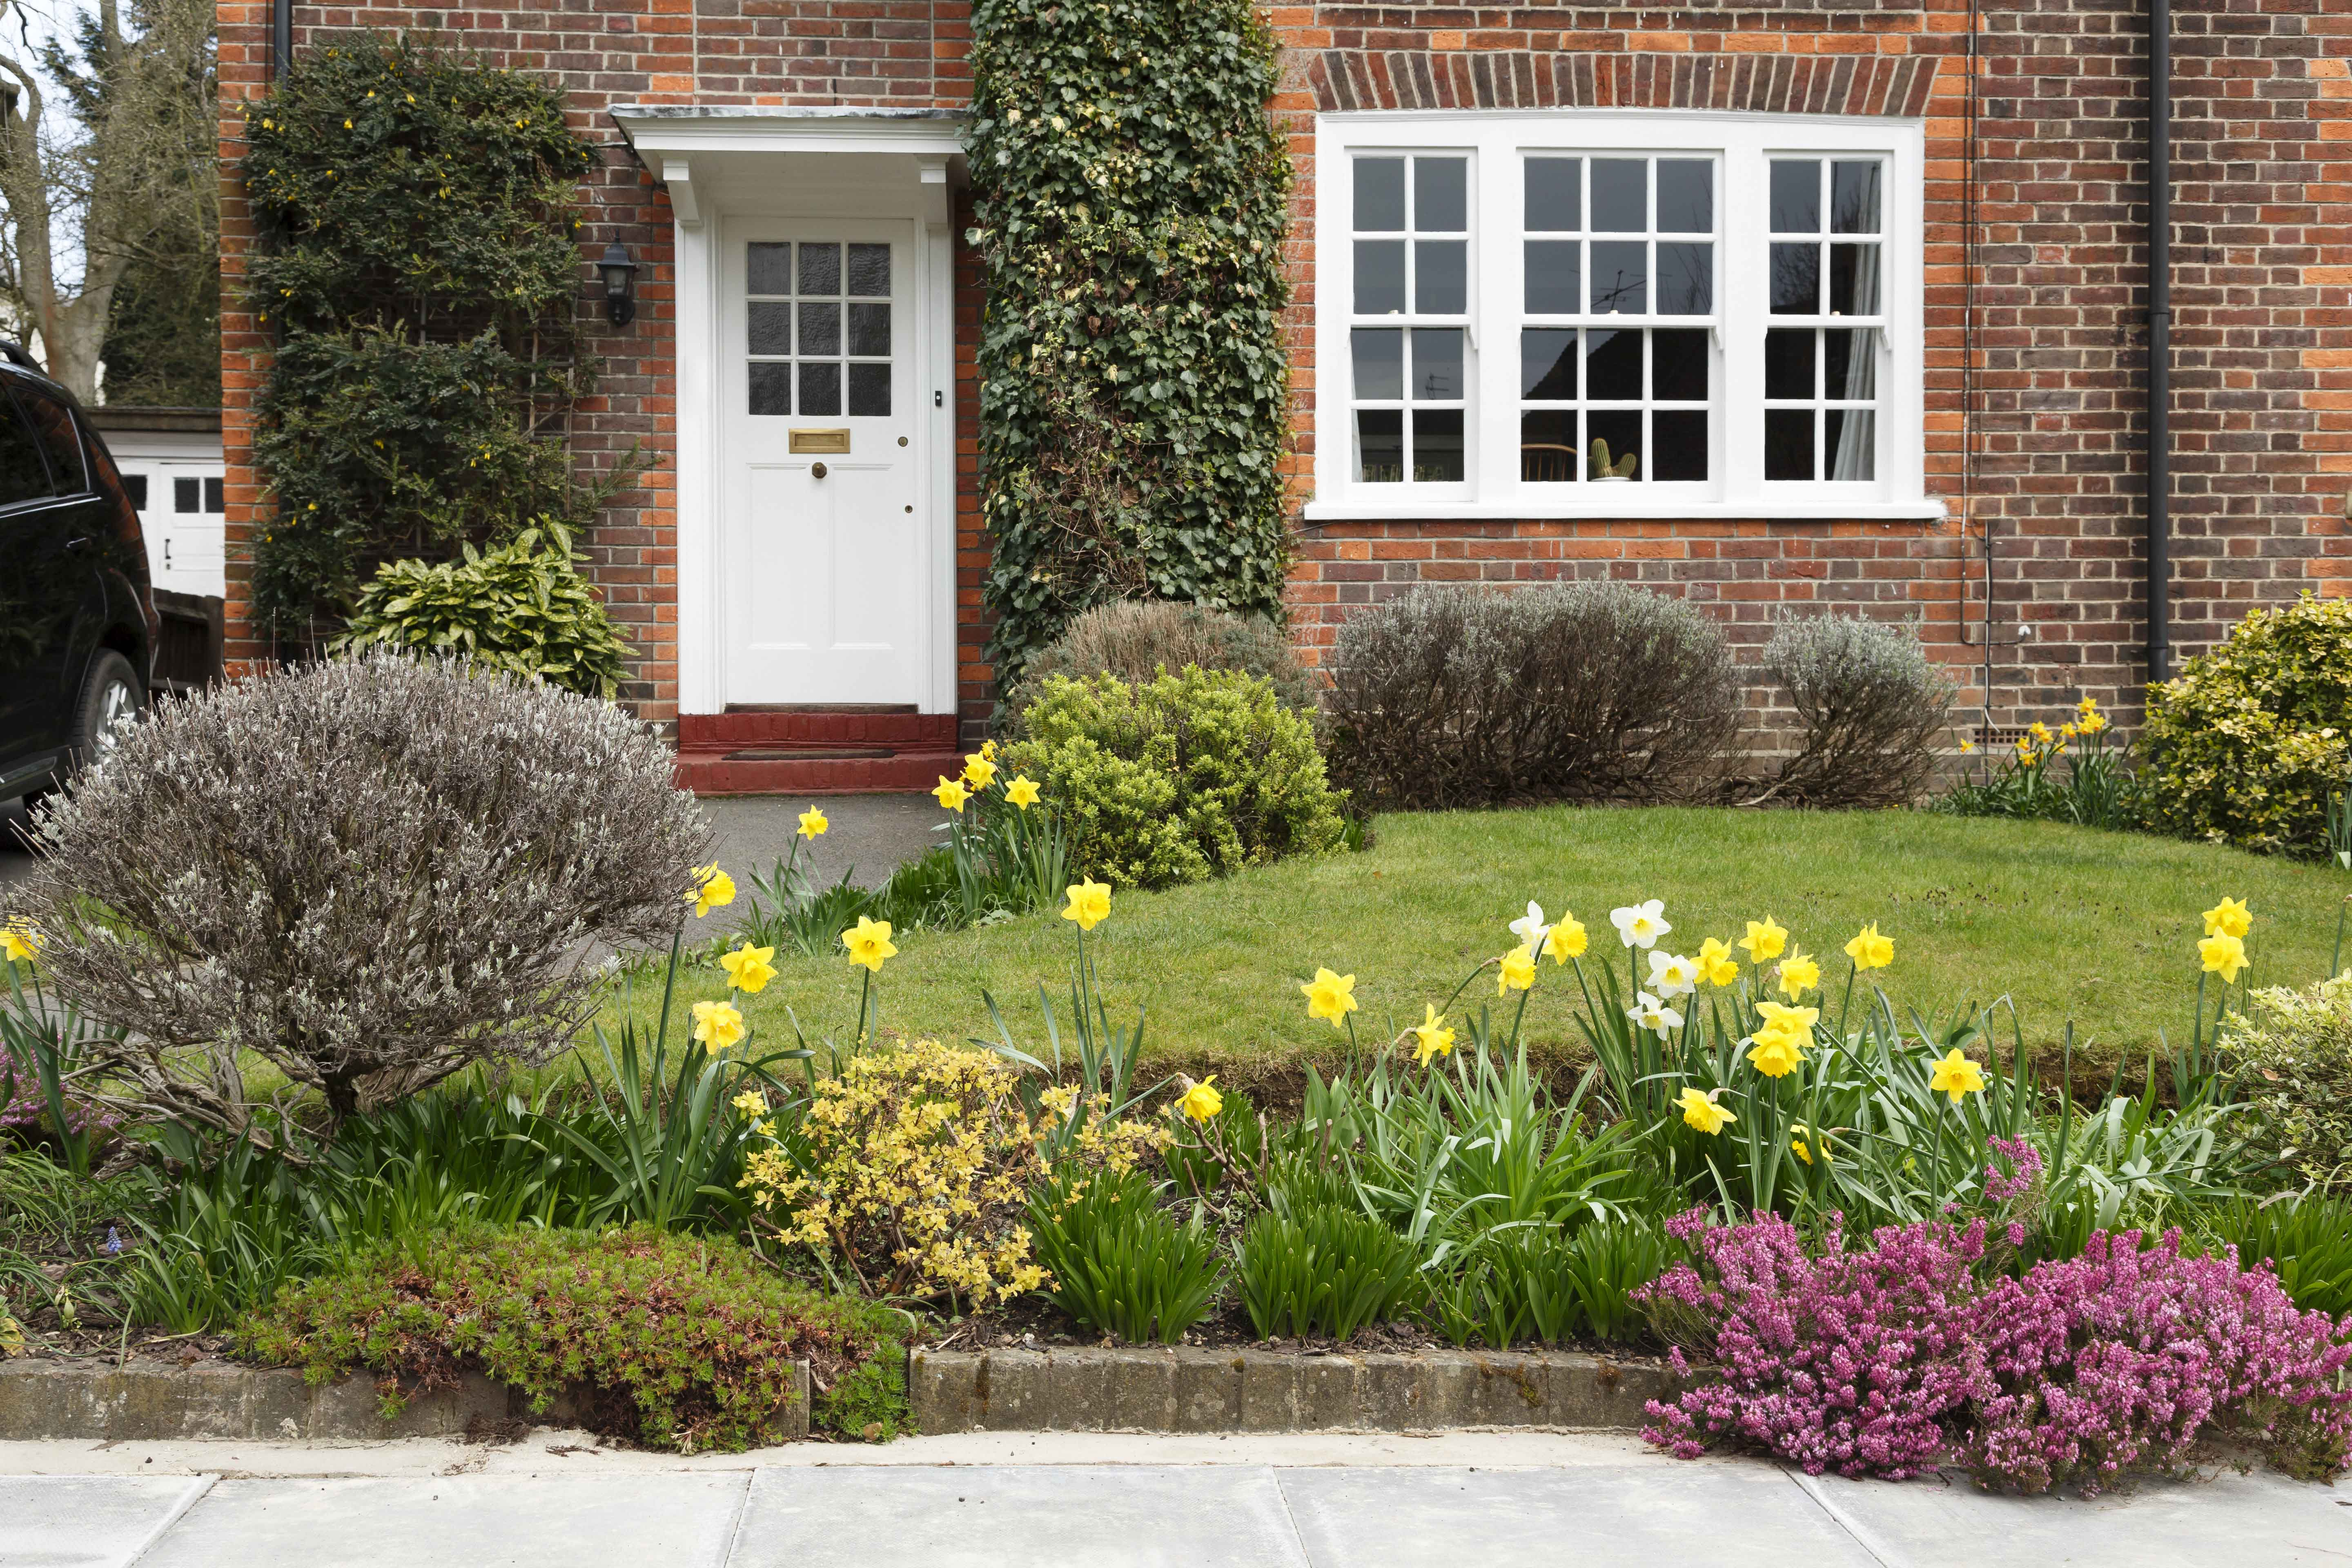 period house in cheltenham with a front garden planted with daffodil flowers